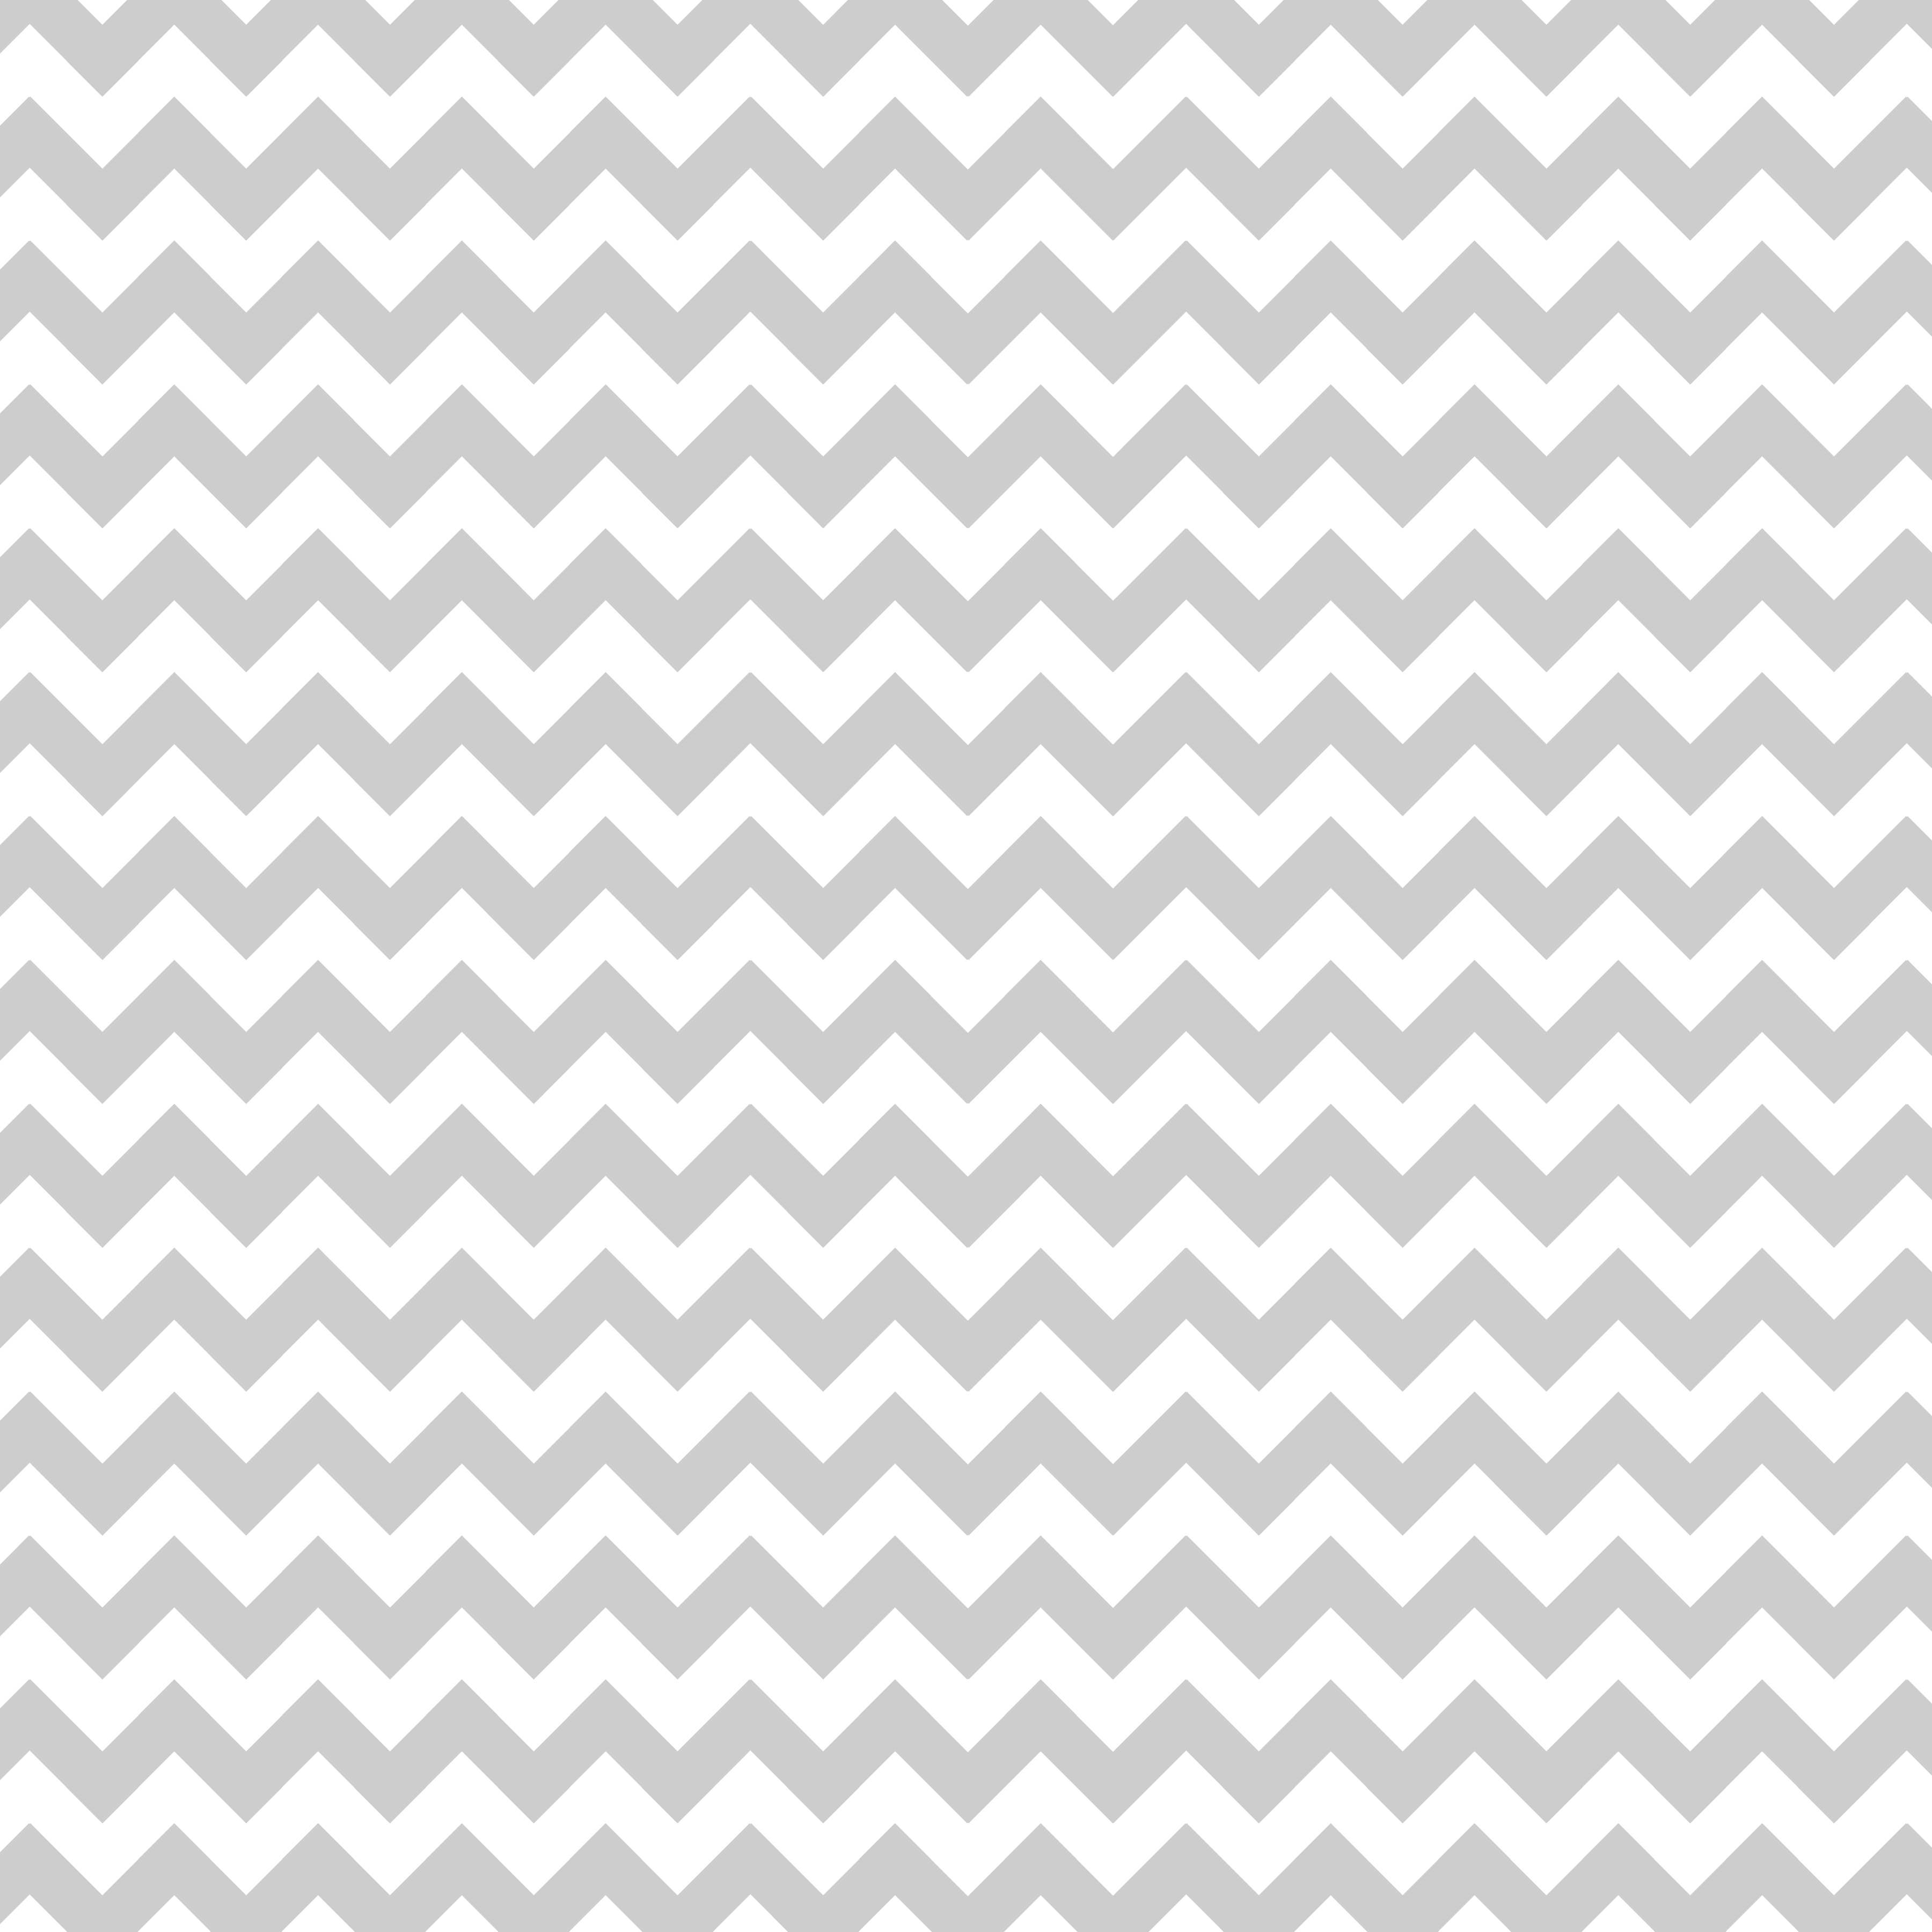 7 Images of Printable Chevron Art